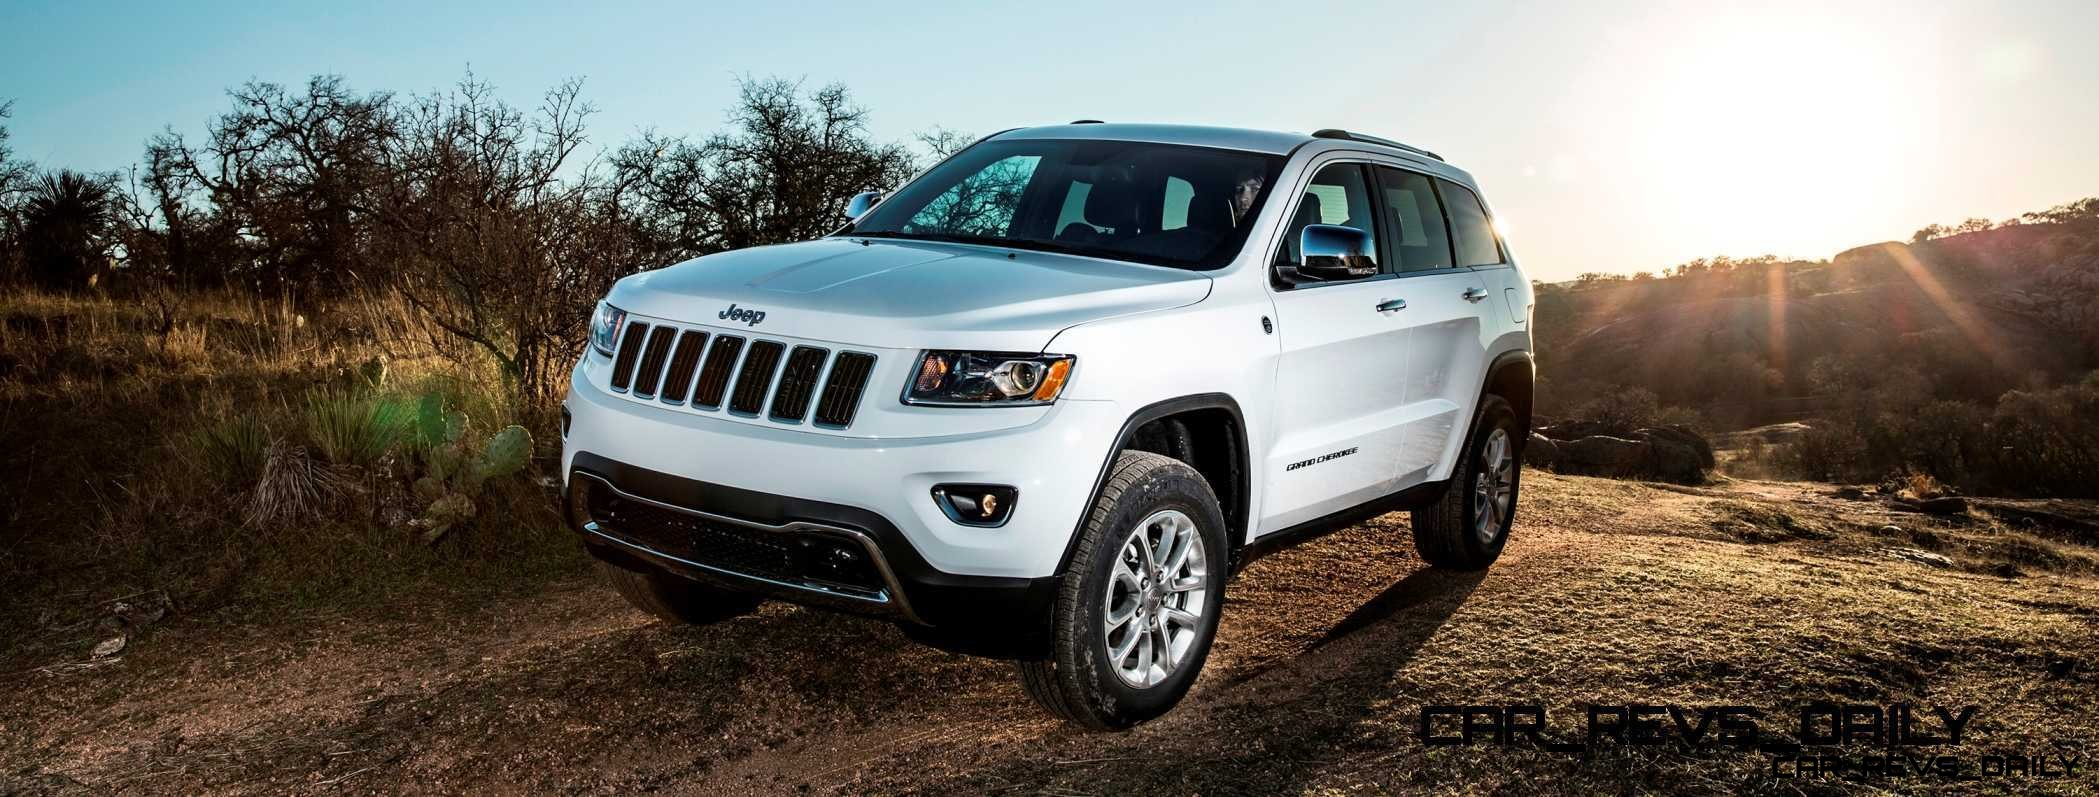 2014 Jeep Grand Cherokee Laredo From $29,000